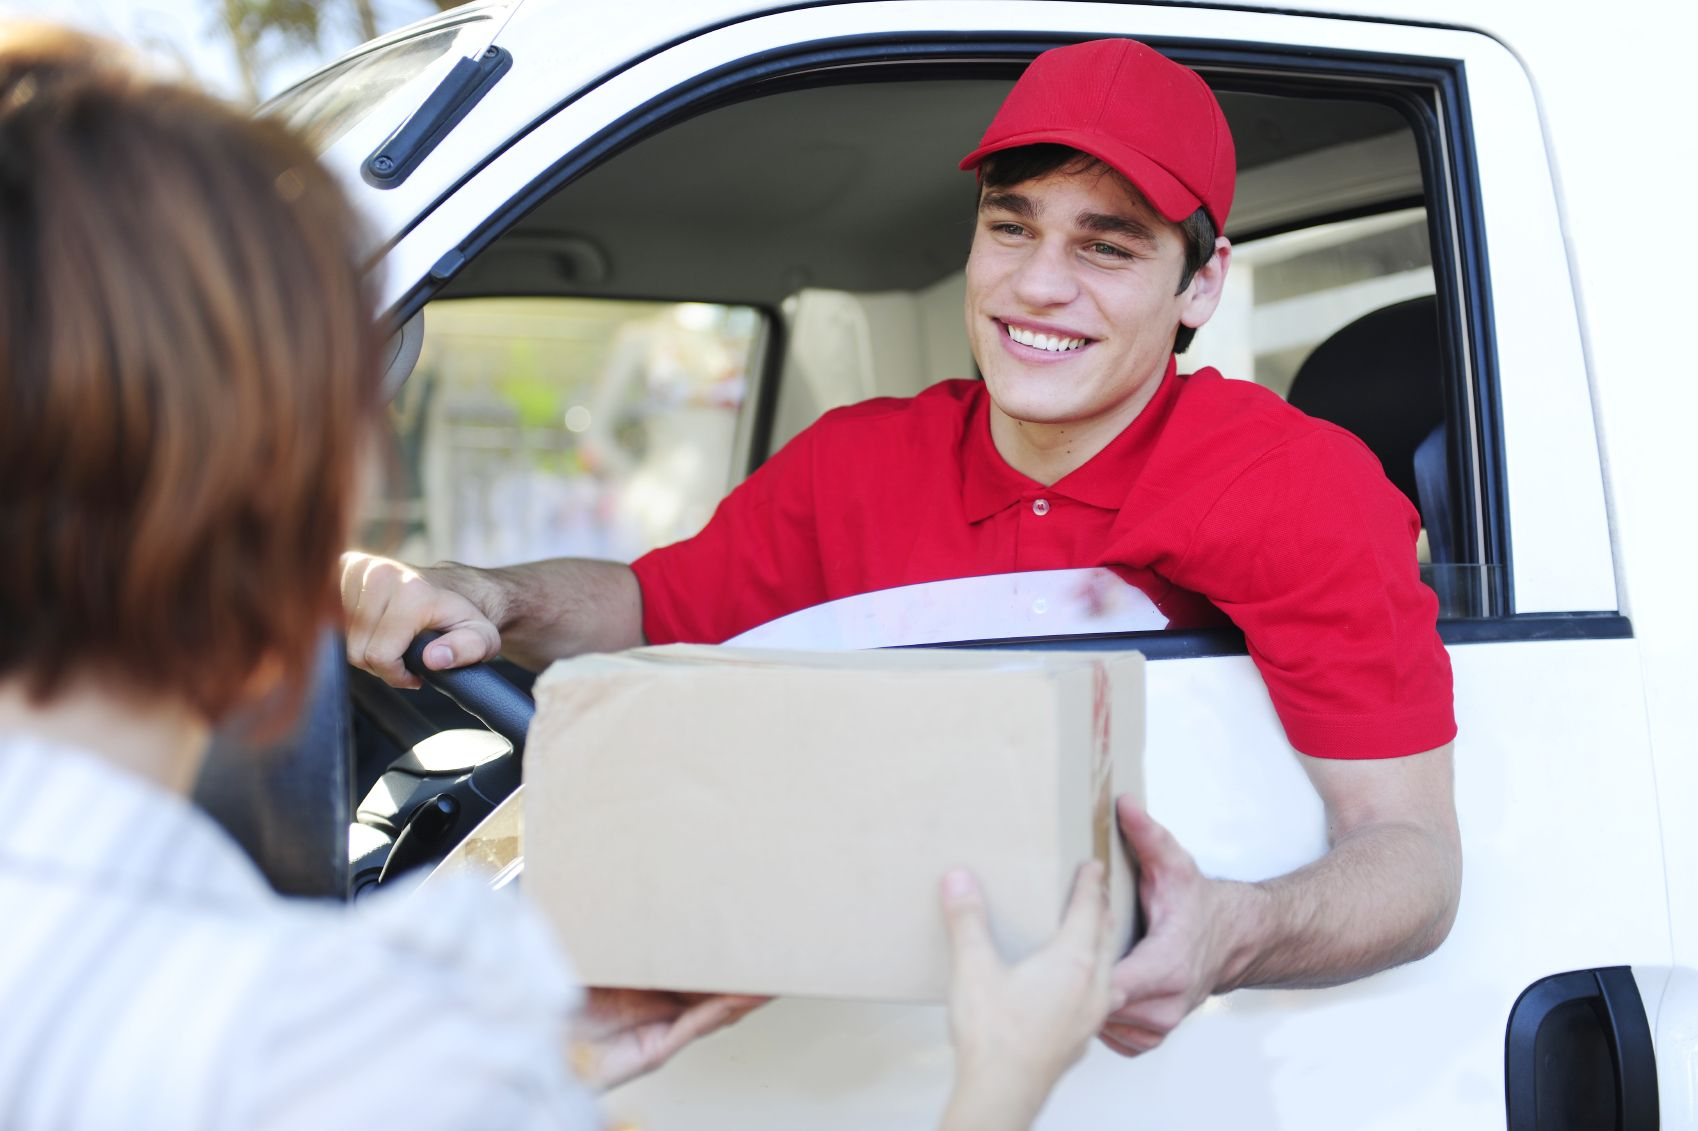 DREAM DRIVERS Ltd delivery drivers wanted in Edinburgh, so